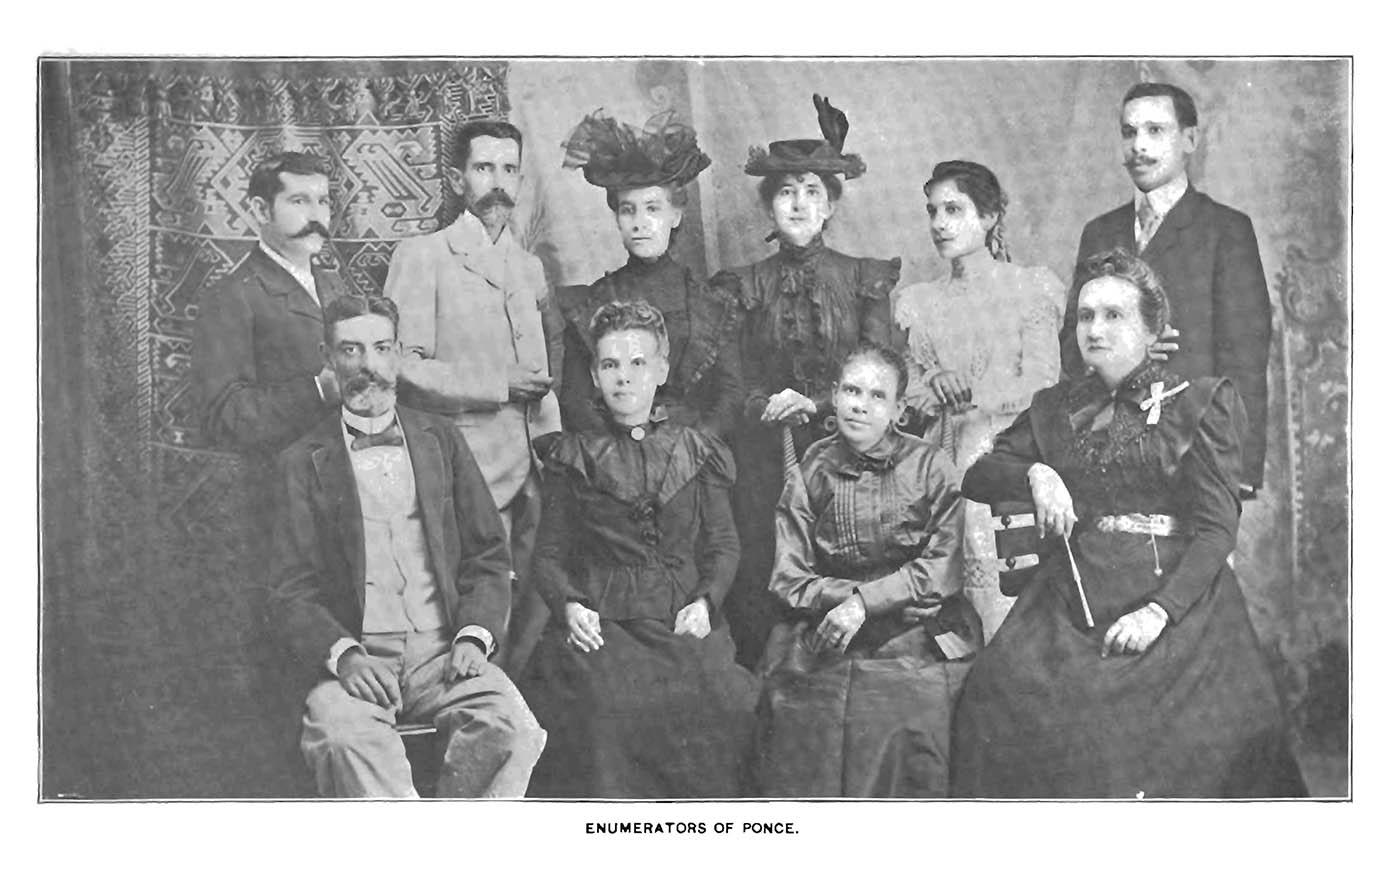 photograph of the census takers from Ponce, Puerto Rico